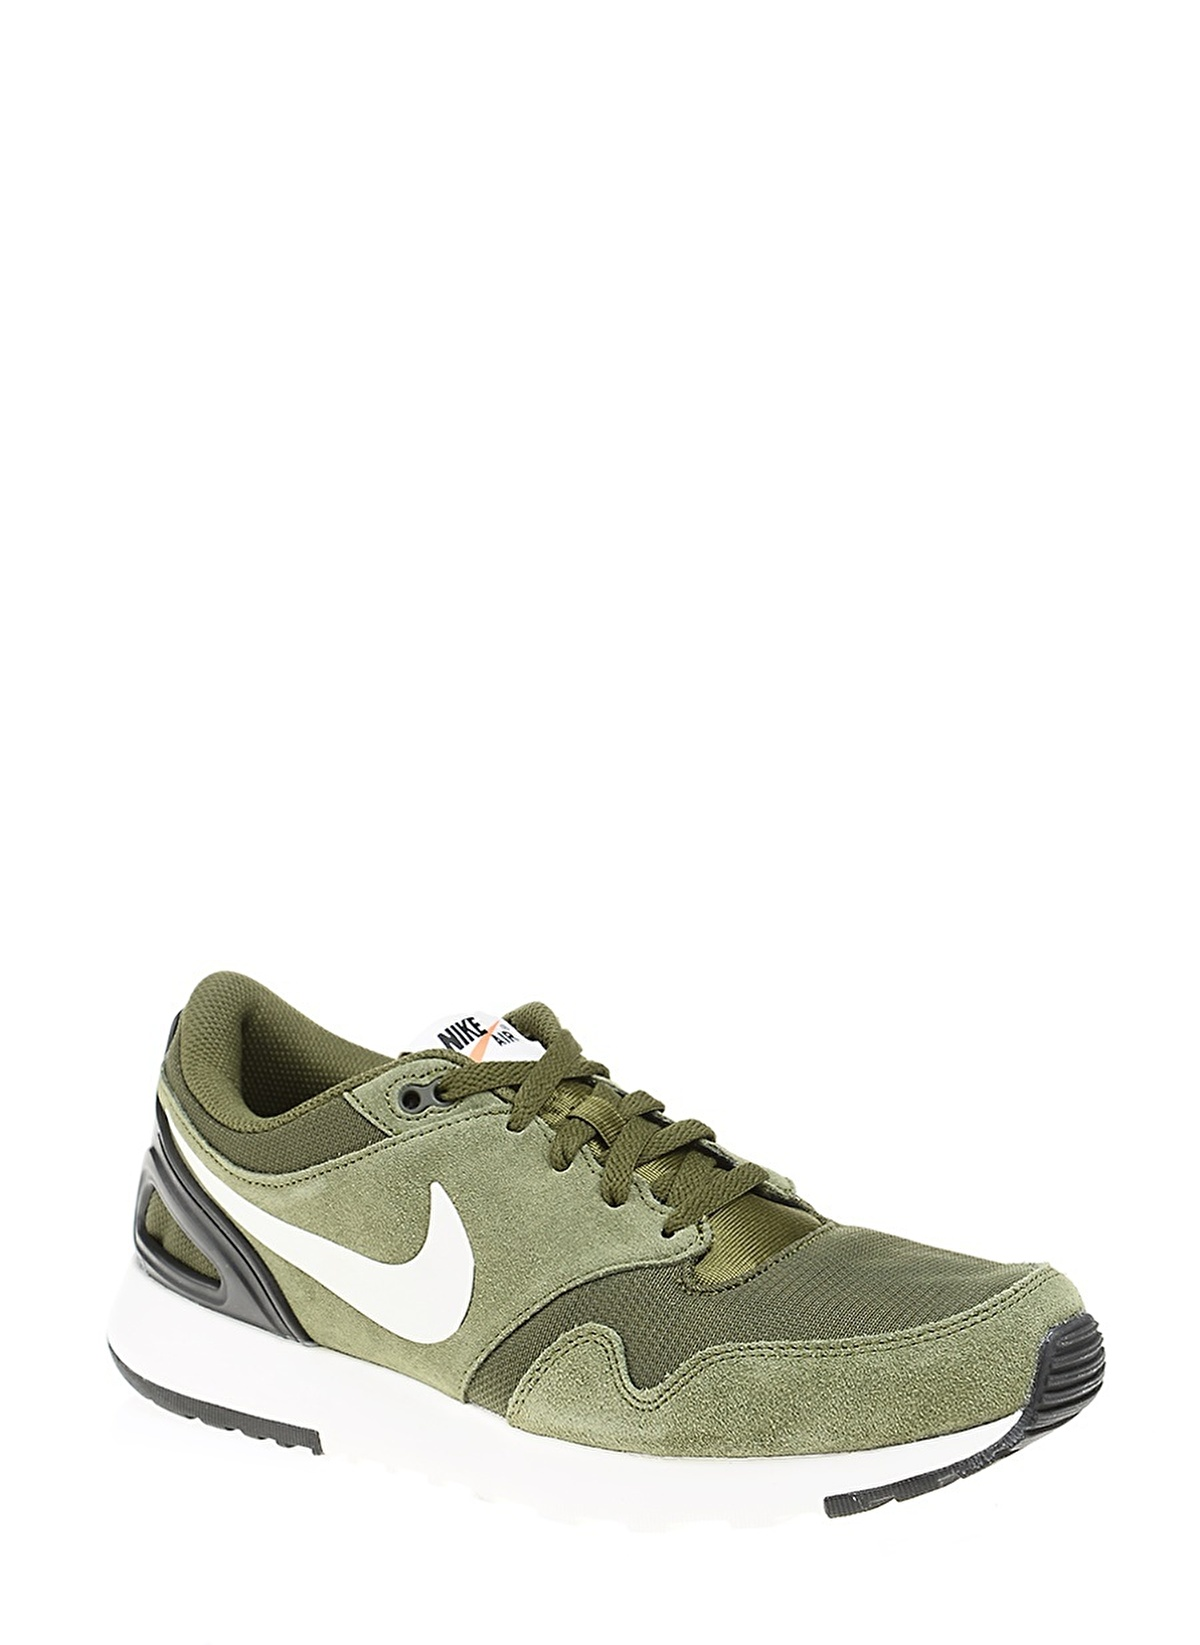 newest 75260 17a06 Nike Nike Air Vibenna Yeşil ...